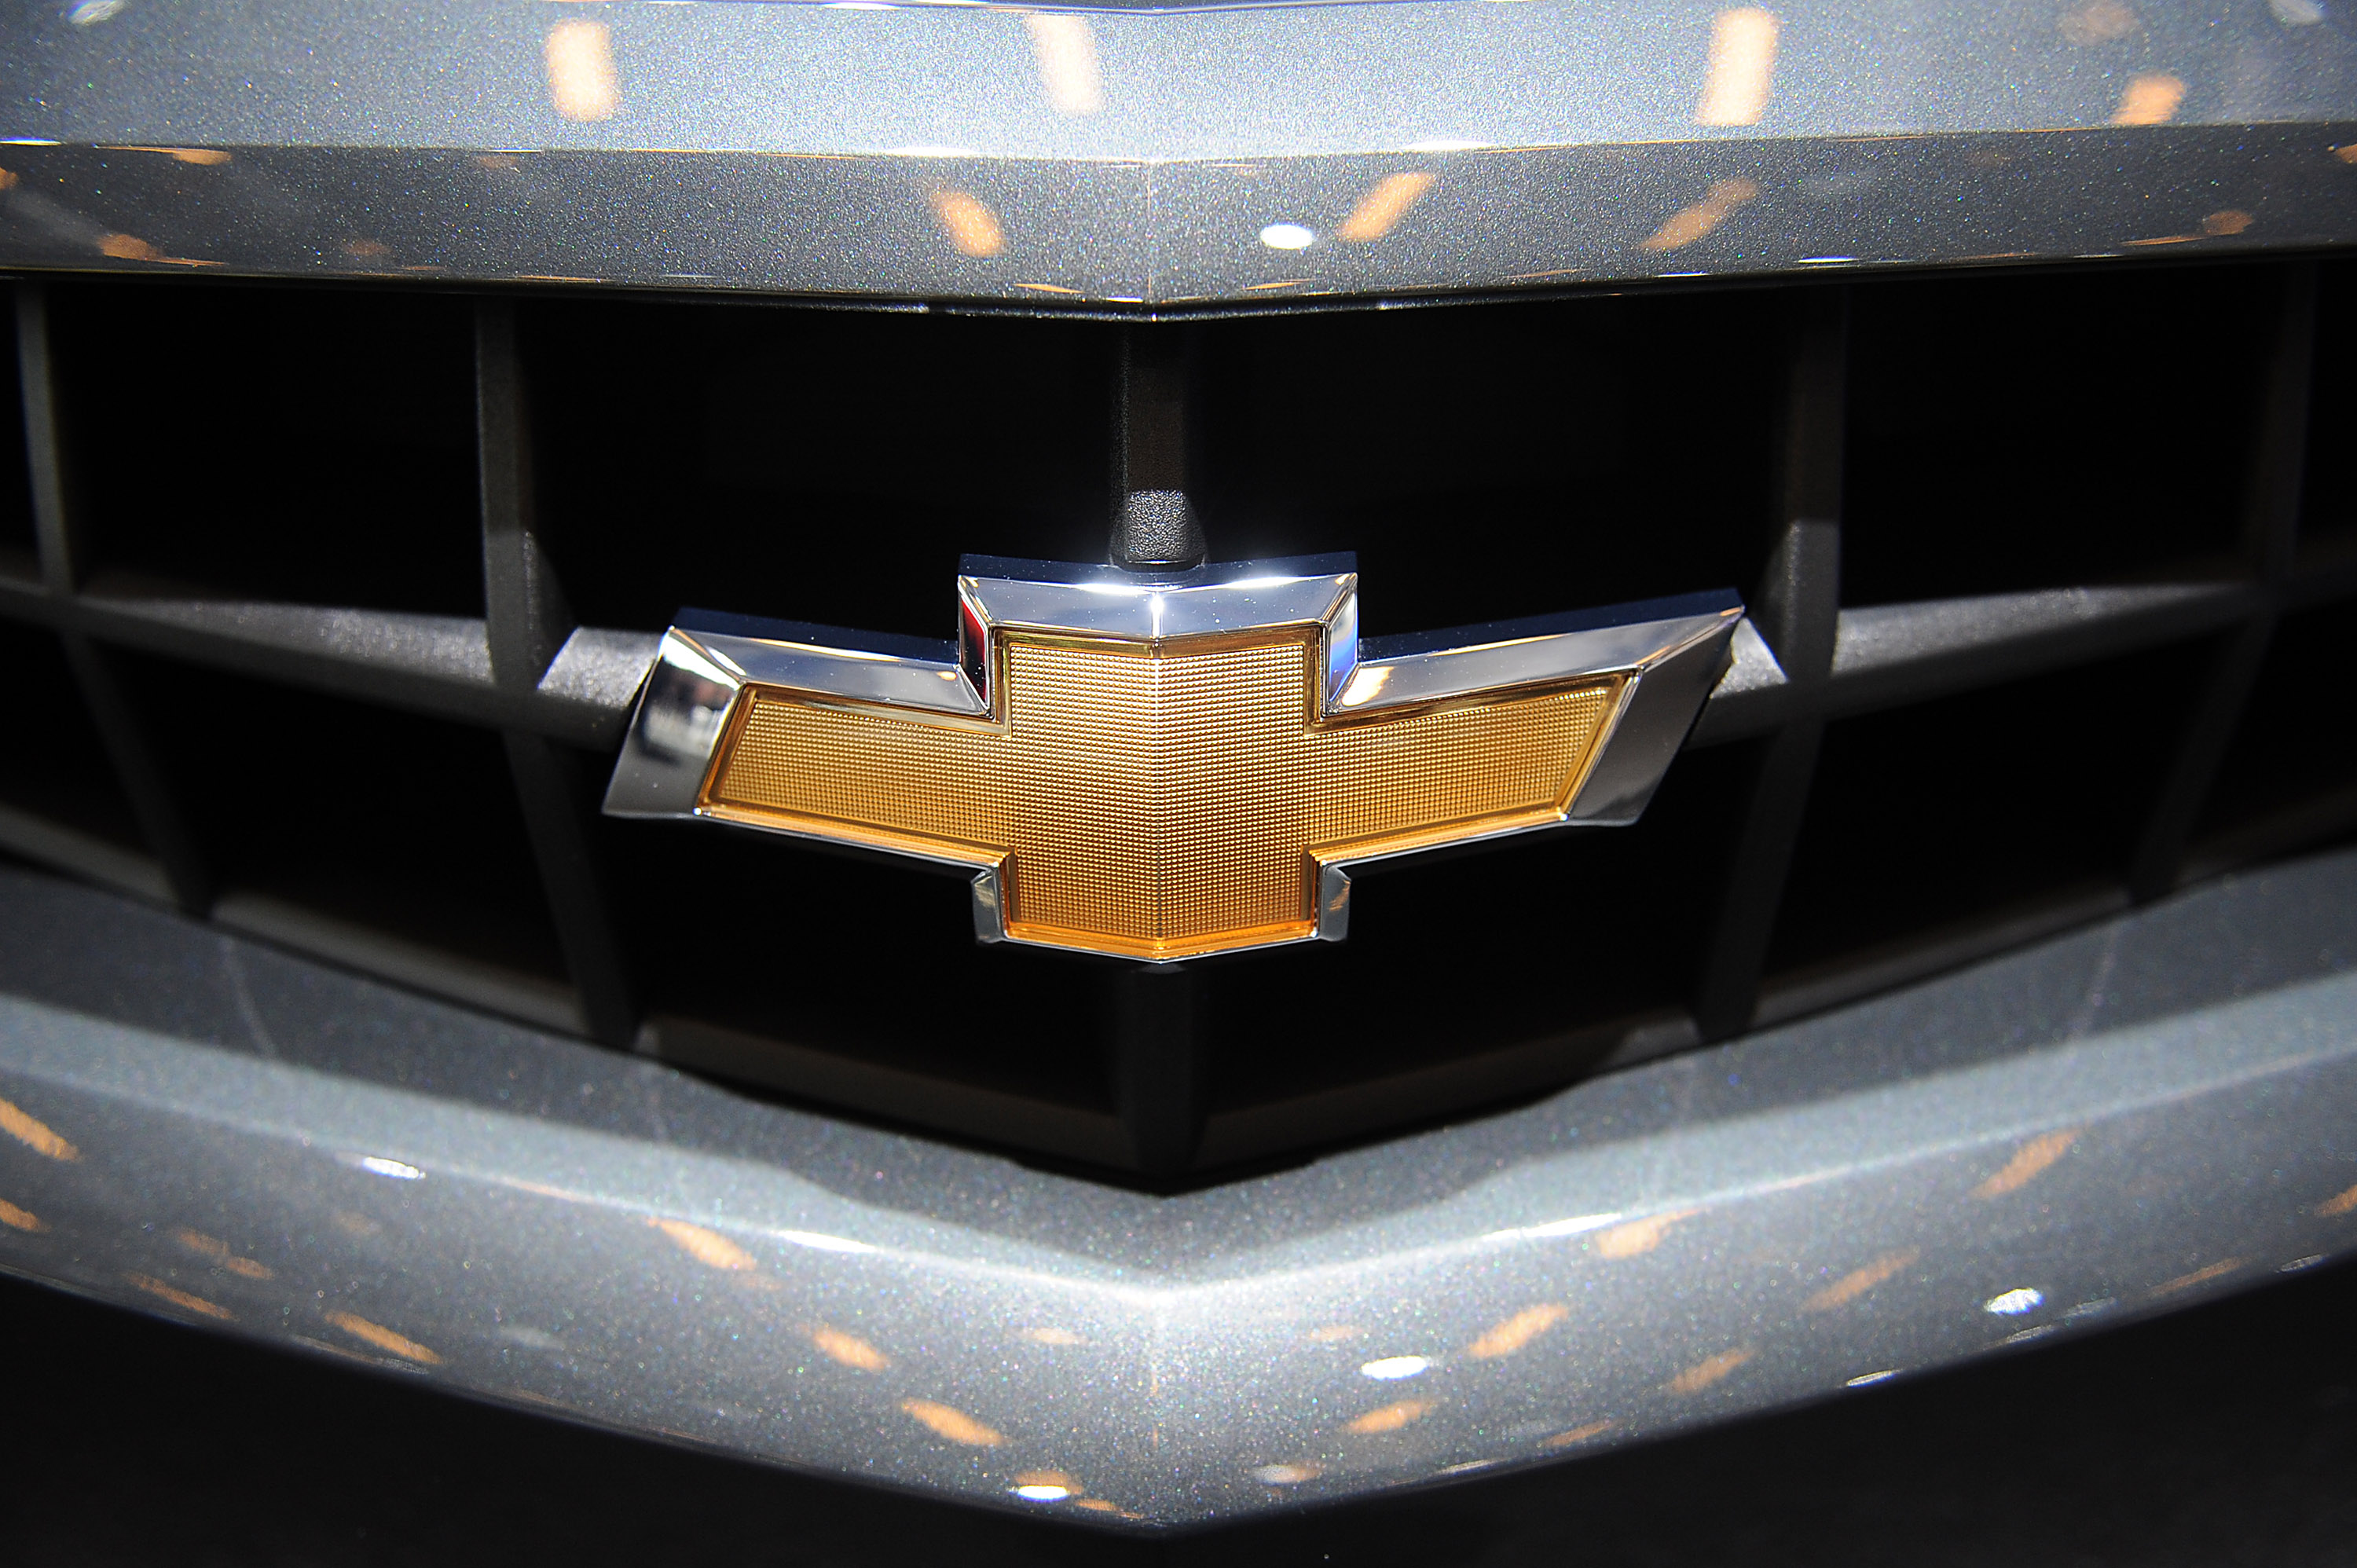 A Chevrolet logo is seen on a Chevrolet Trax.